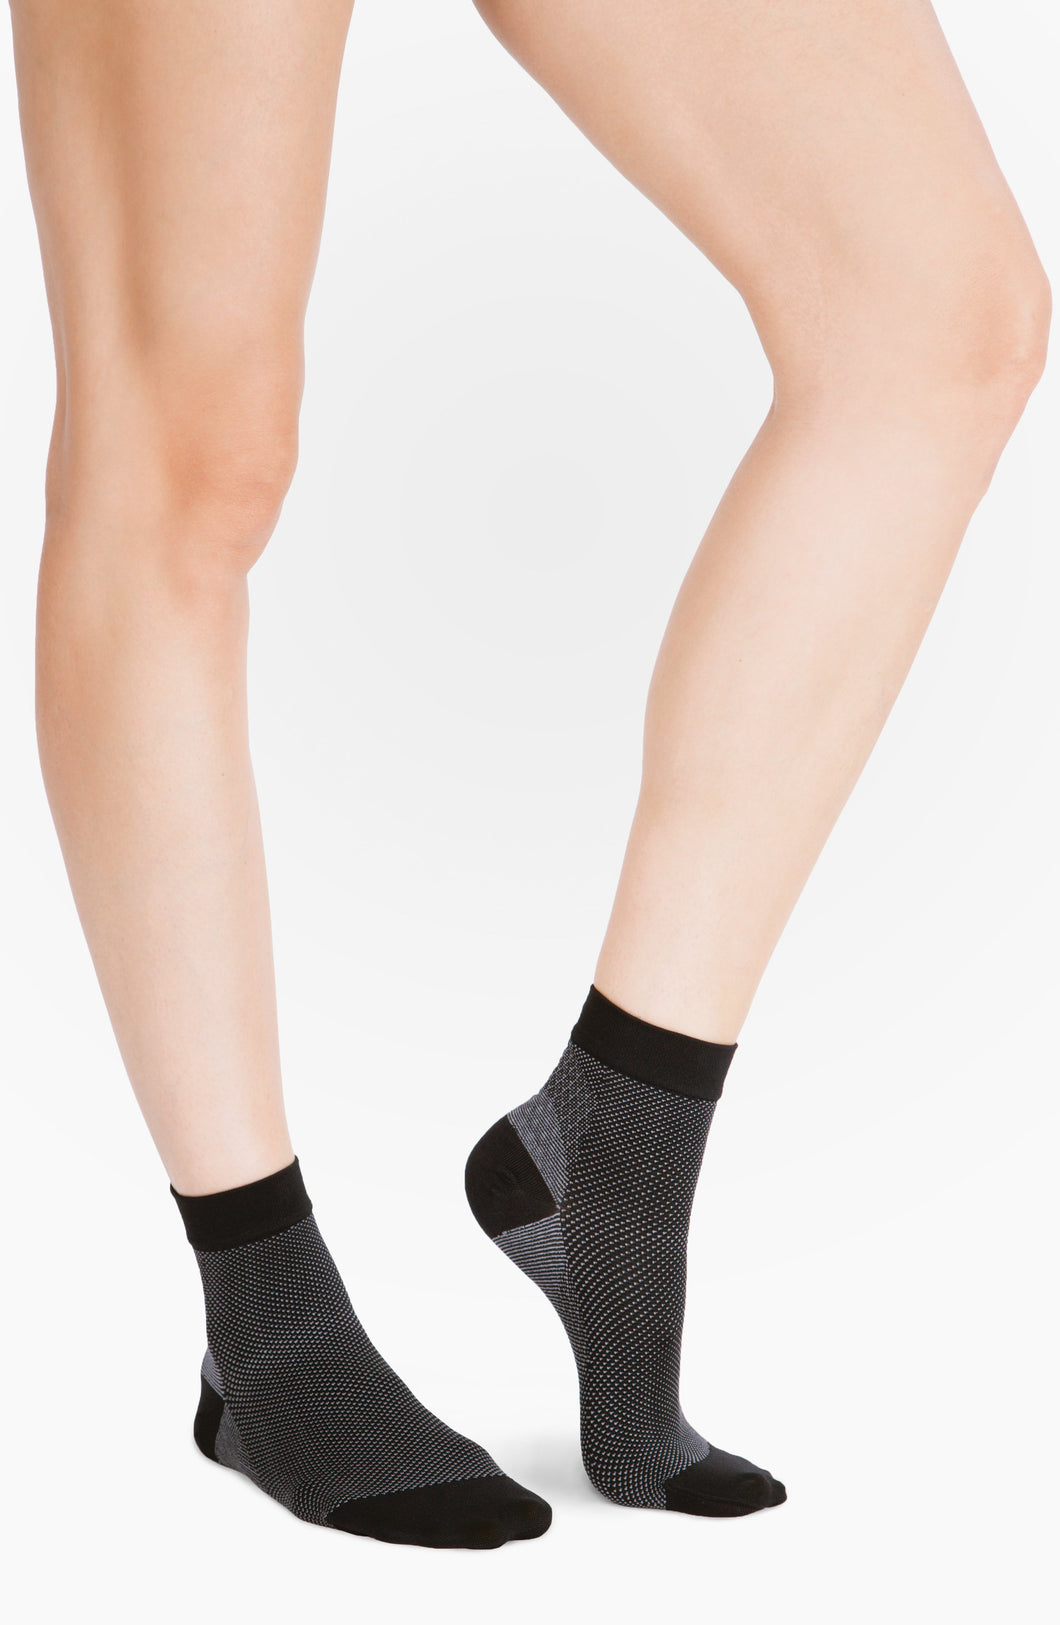 Belly Bandit Socks Black/ Grey / Size 1 Belly Bandit® Compression Ankle Sock